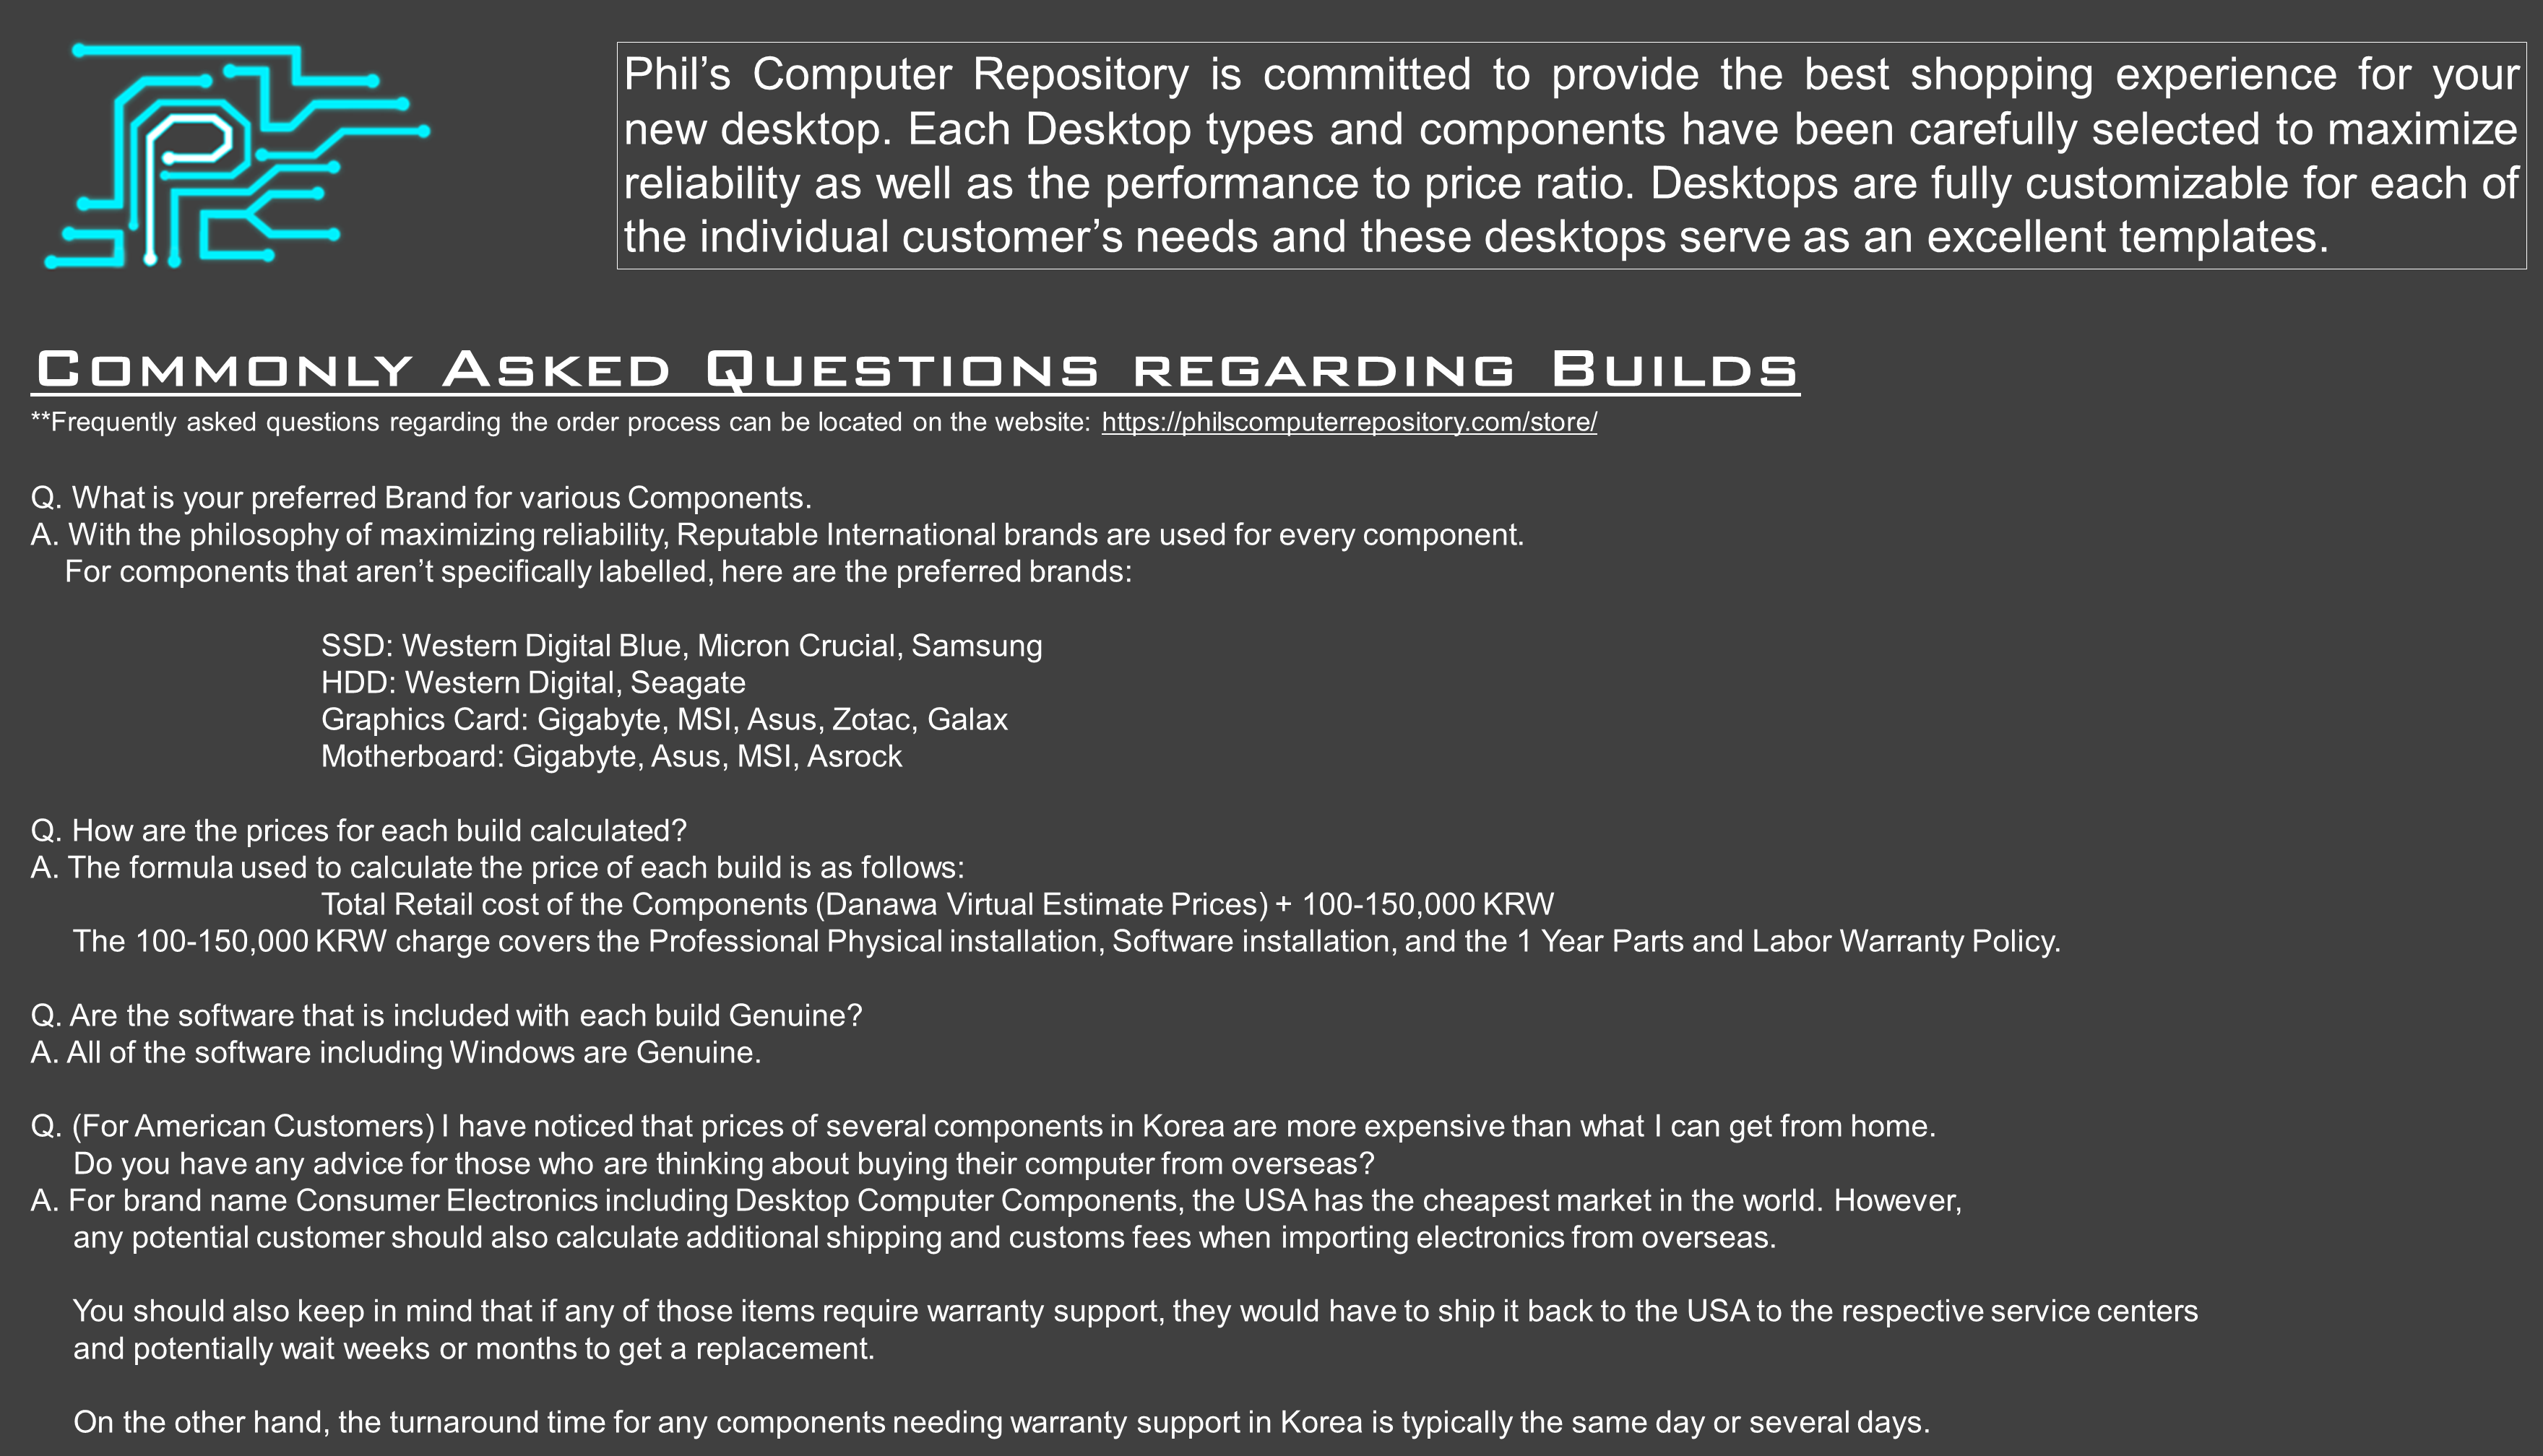 Store - Phil's Computer Repository